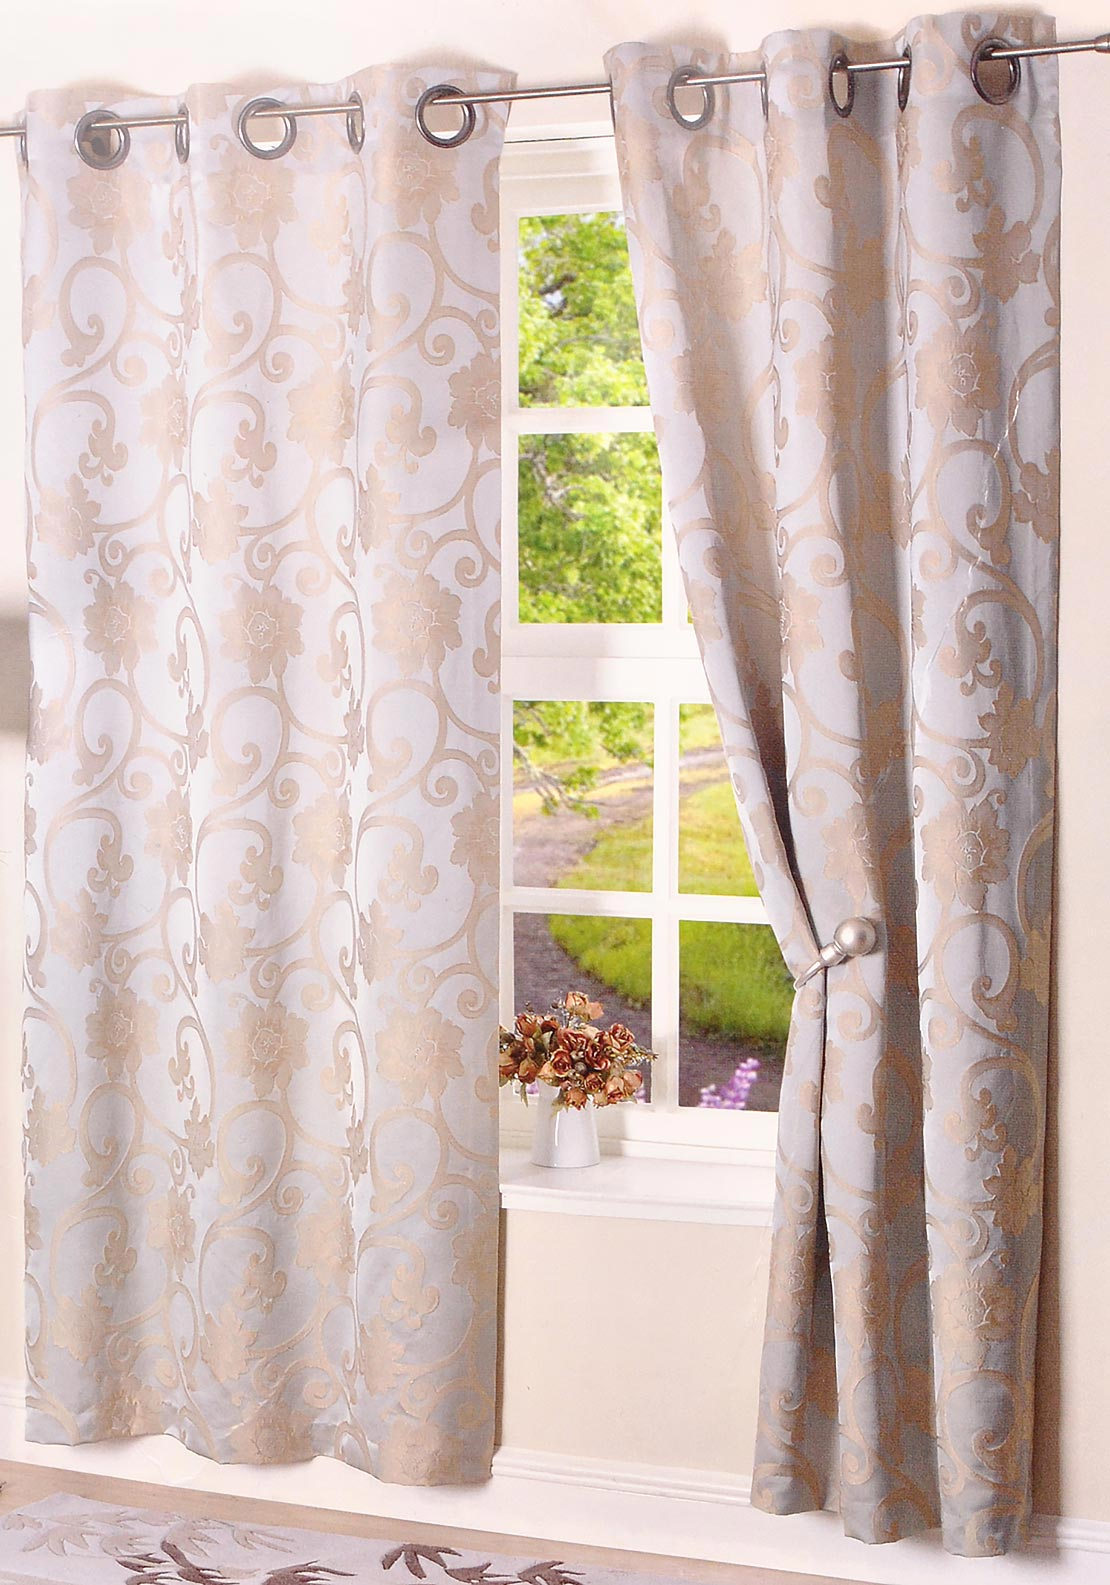 EA Design Interlined Hanover Readymade Eyelet Curtains, Mint Green